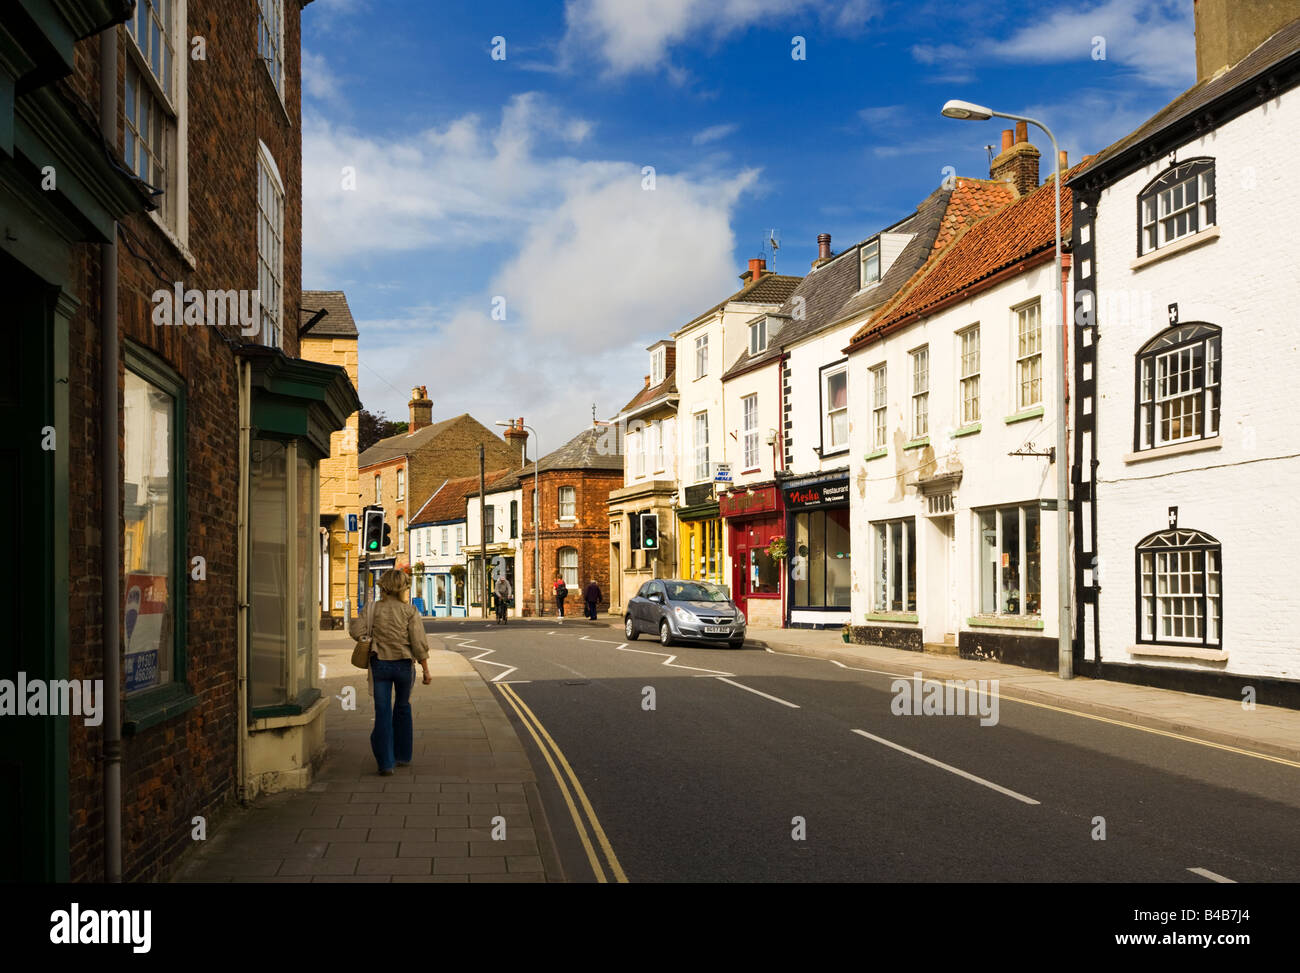 Typical English High street in Alford, Lincolnshire, England, UK Stock Photo